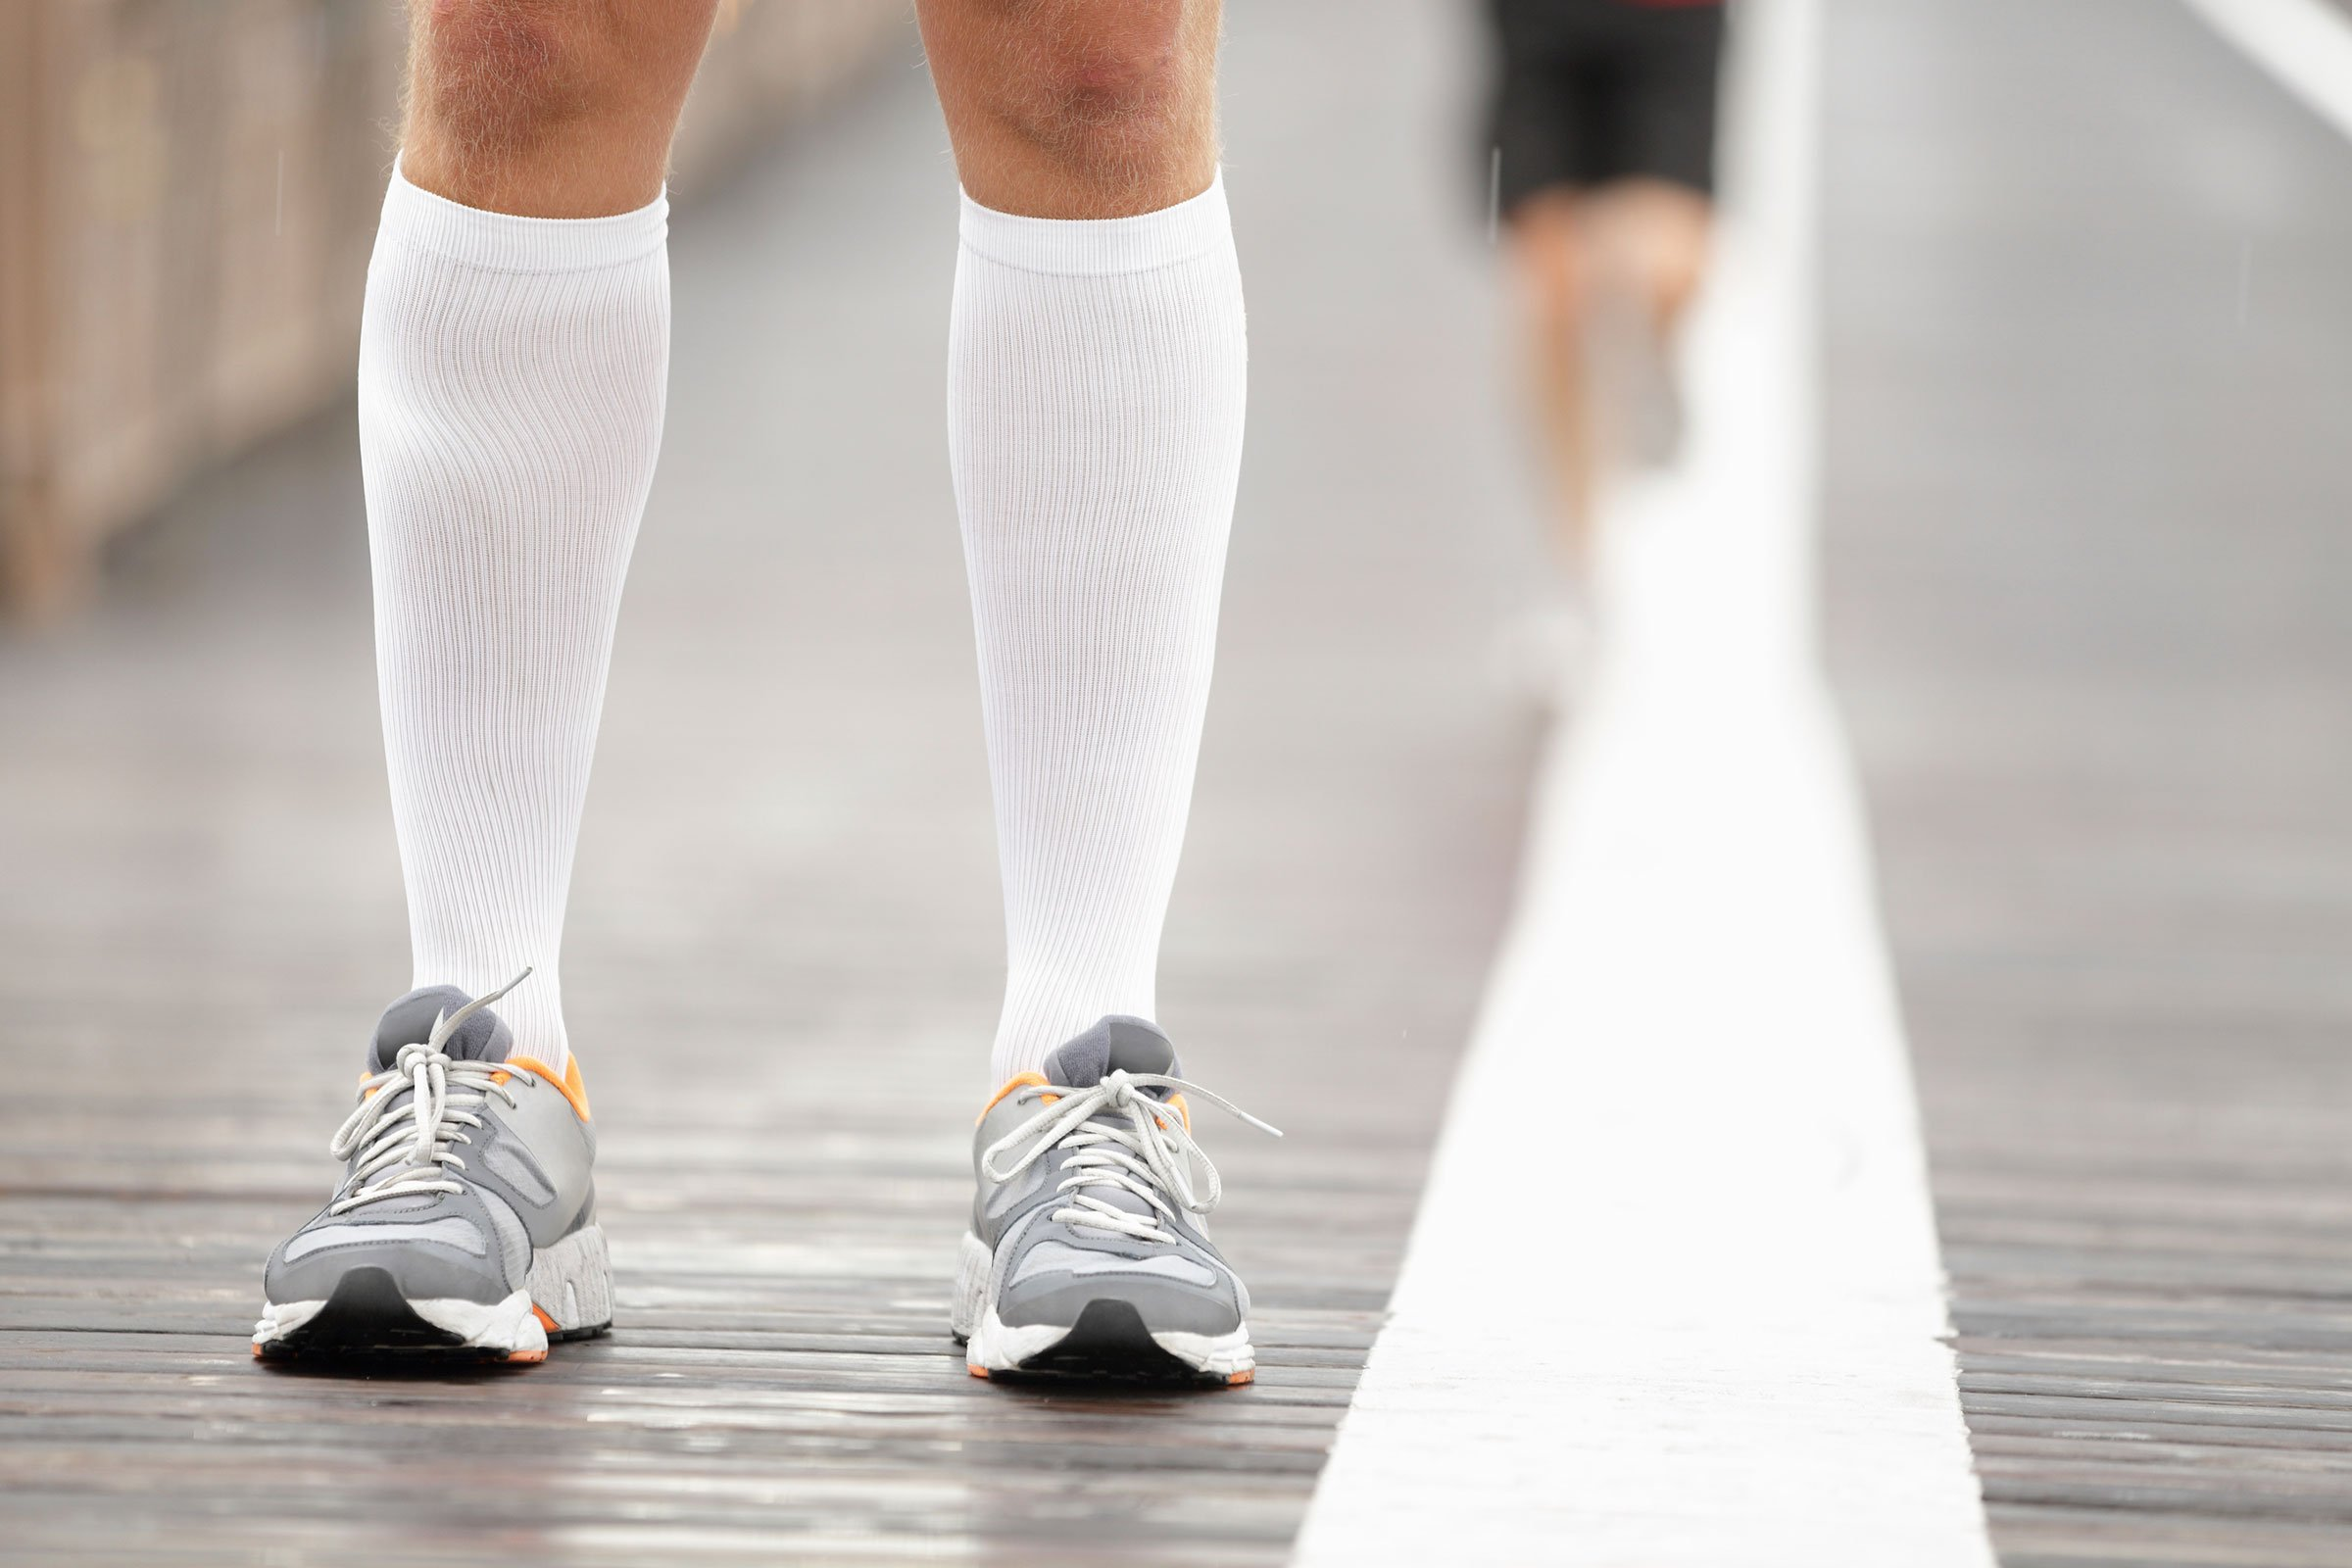 swollen feet | person wearing compression socks and sneakers